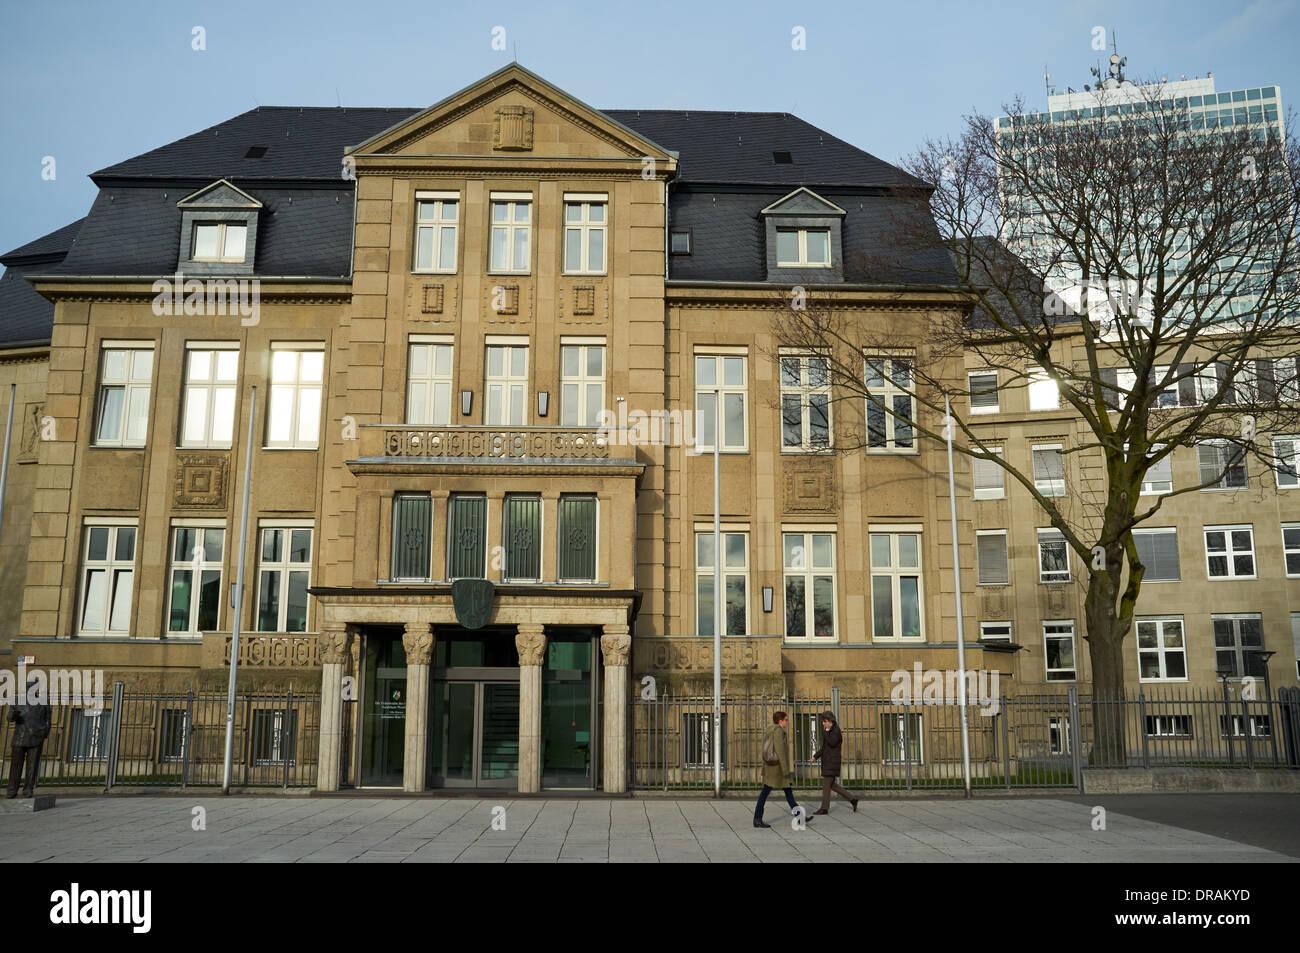 Local government building Dusseldorf Germany - Stock Image